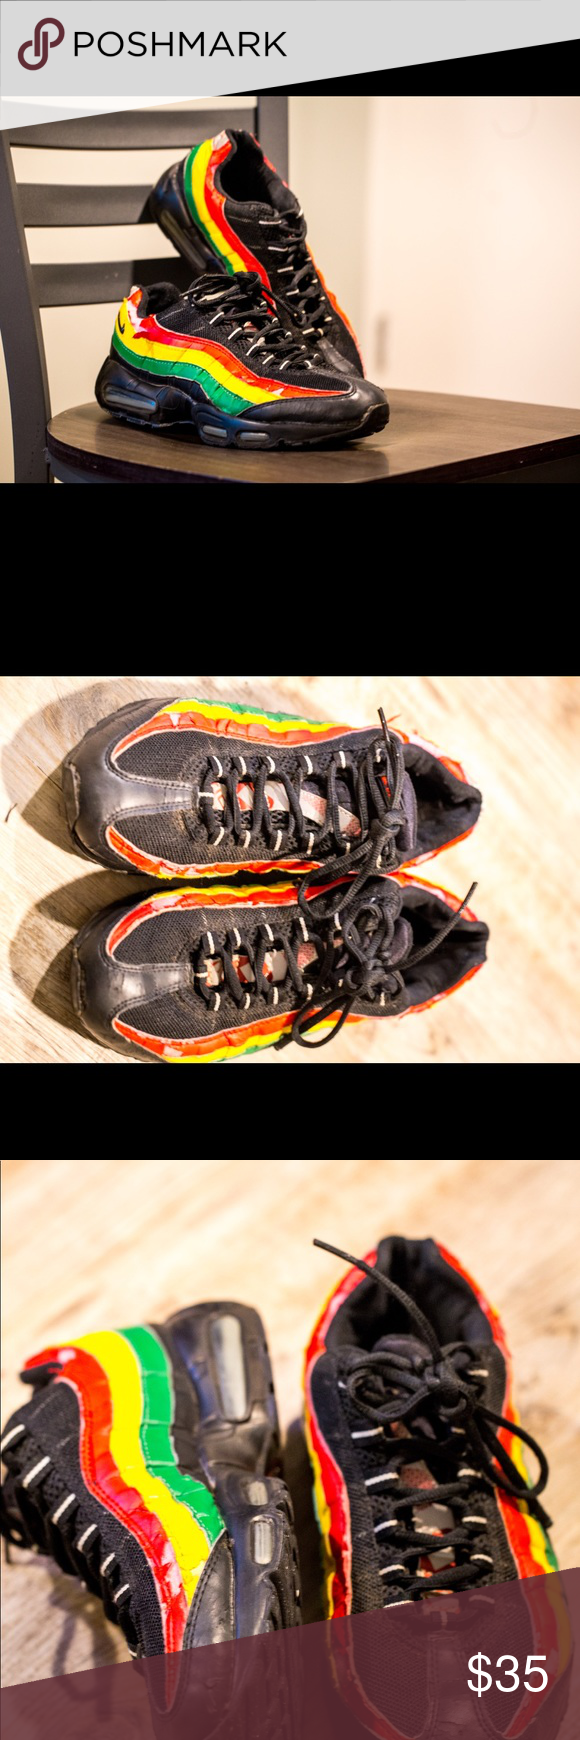 the latest 06f2a 60142 RARE Nike Air Max 95 Jamaica Jams Very comfortable and iconic Air Maxes!  Also, the Rasta colorway is completely unique! Decent condition after wear  n tear ...